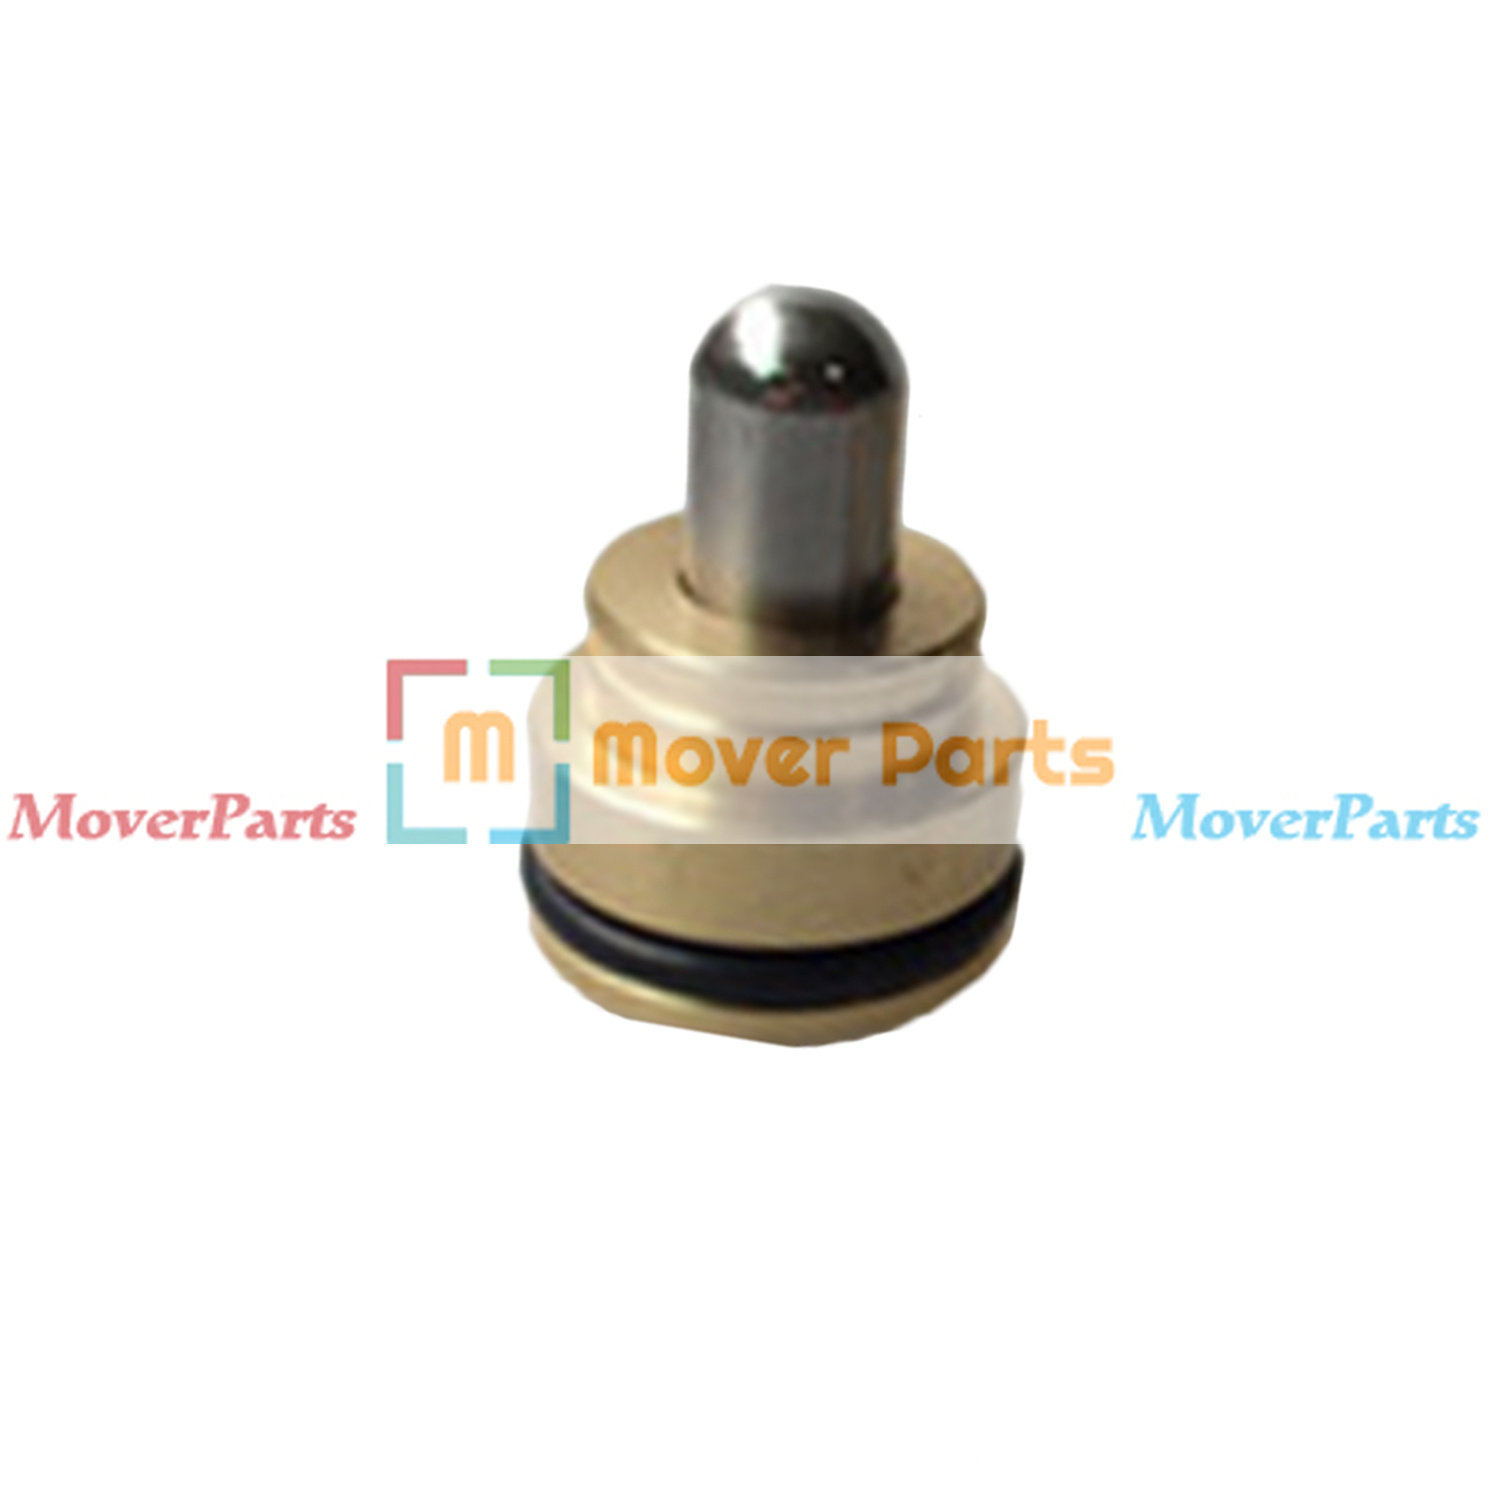 For 1pair Joystick handle Assembly For Hyundai Daewoo DH R220-5 215-7 Excavator